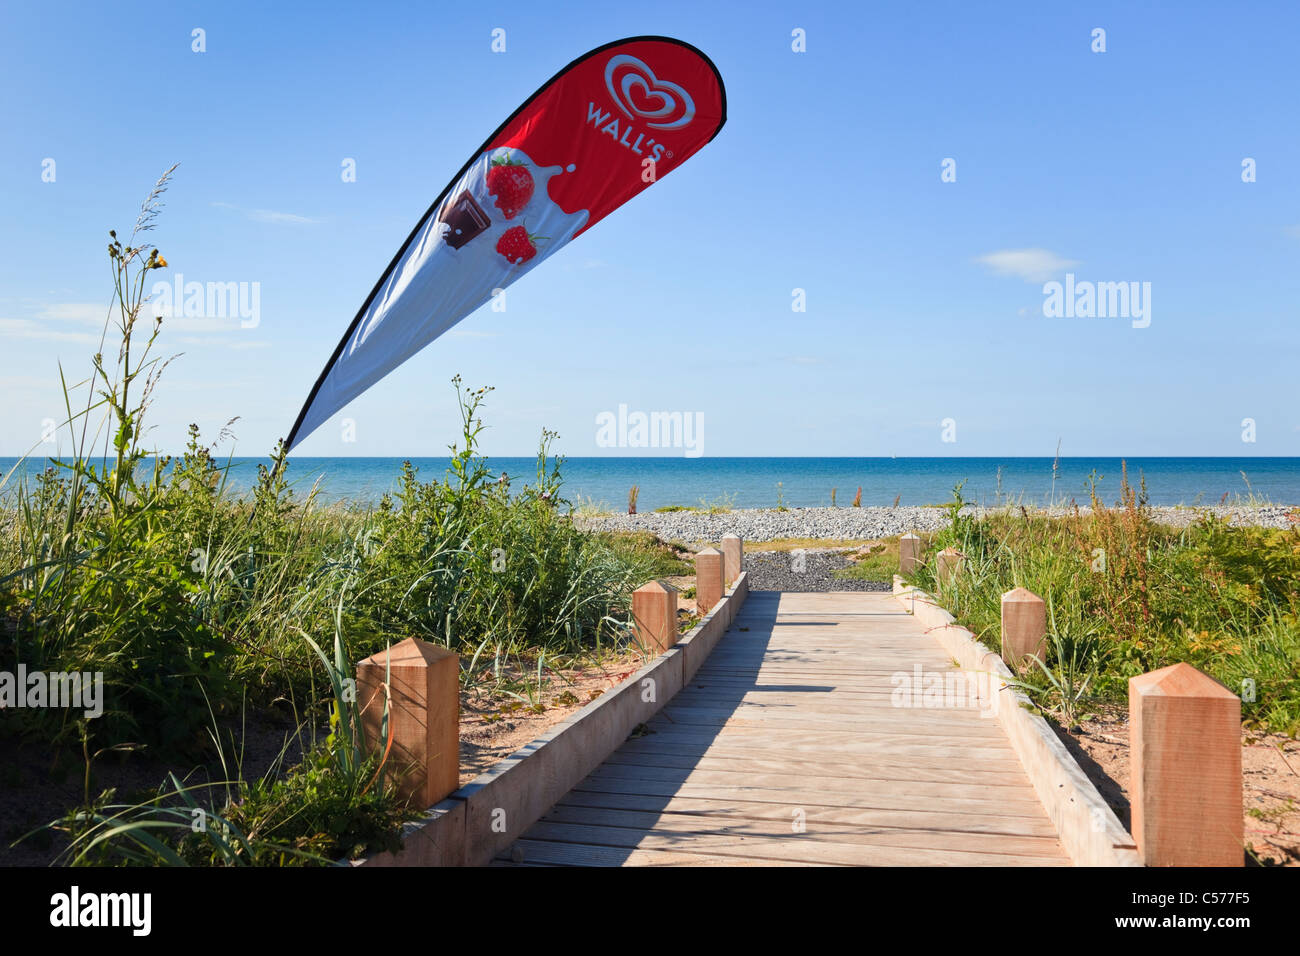 Boardwalk path leading to a beach in Red Wharf Bay with advertisement for Wall's ice creams. Llanddona,Isle - Stock Image